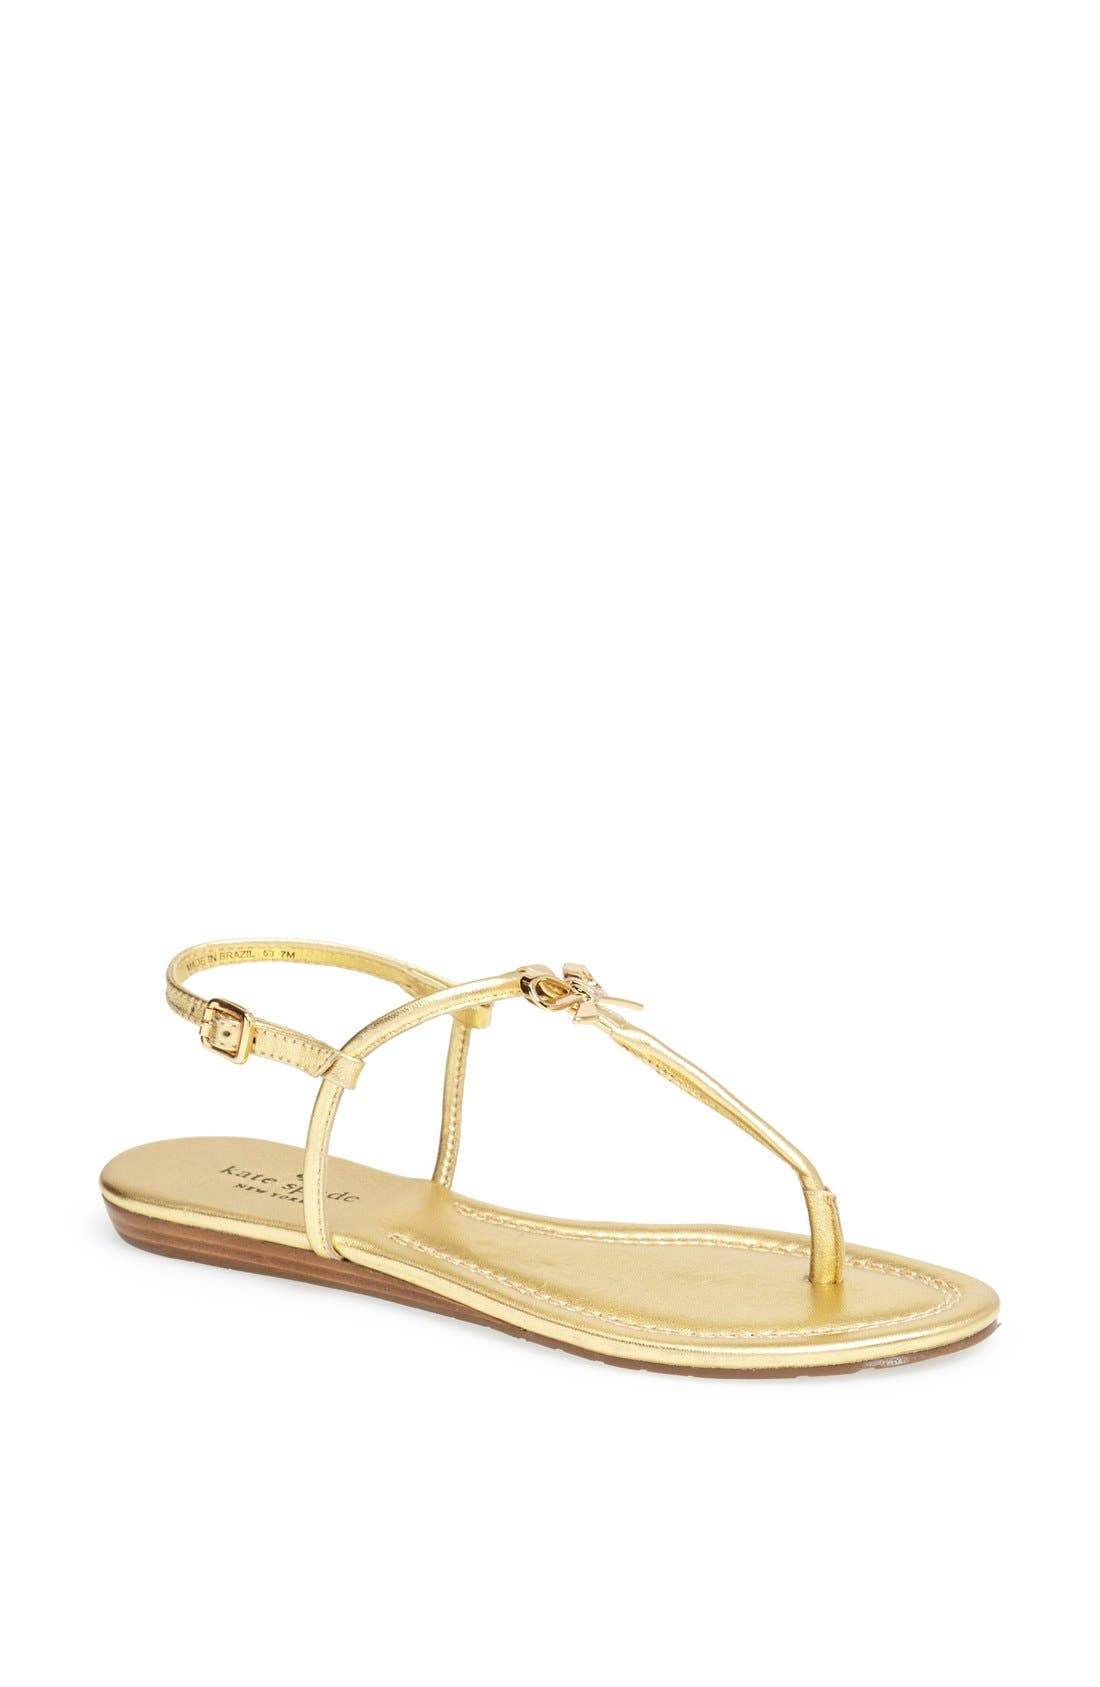 Main Image - kate spade new york 'tracie' sandal